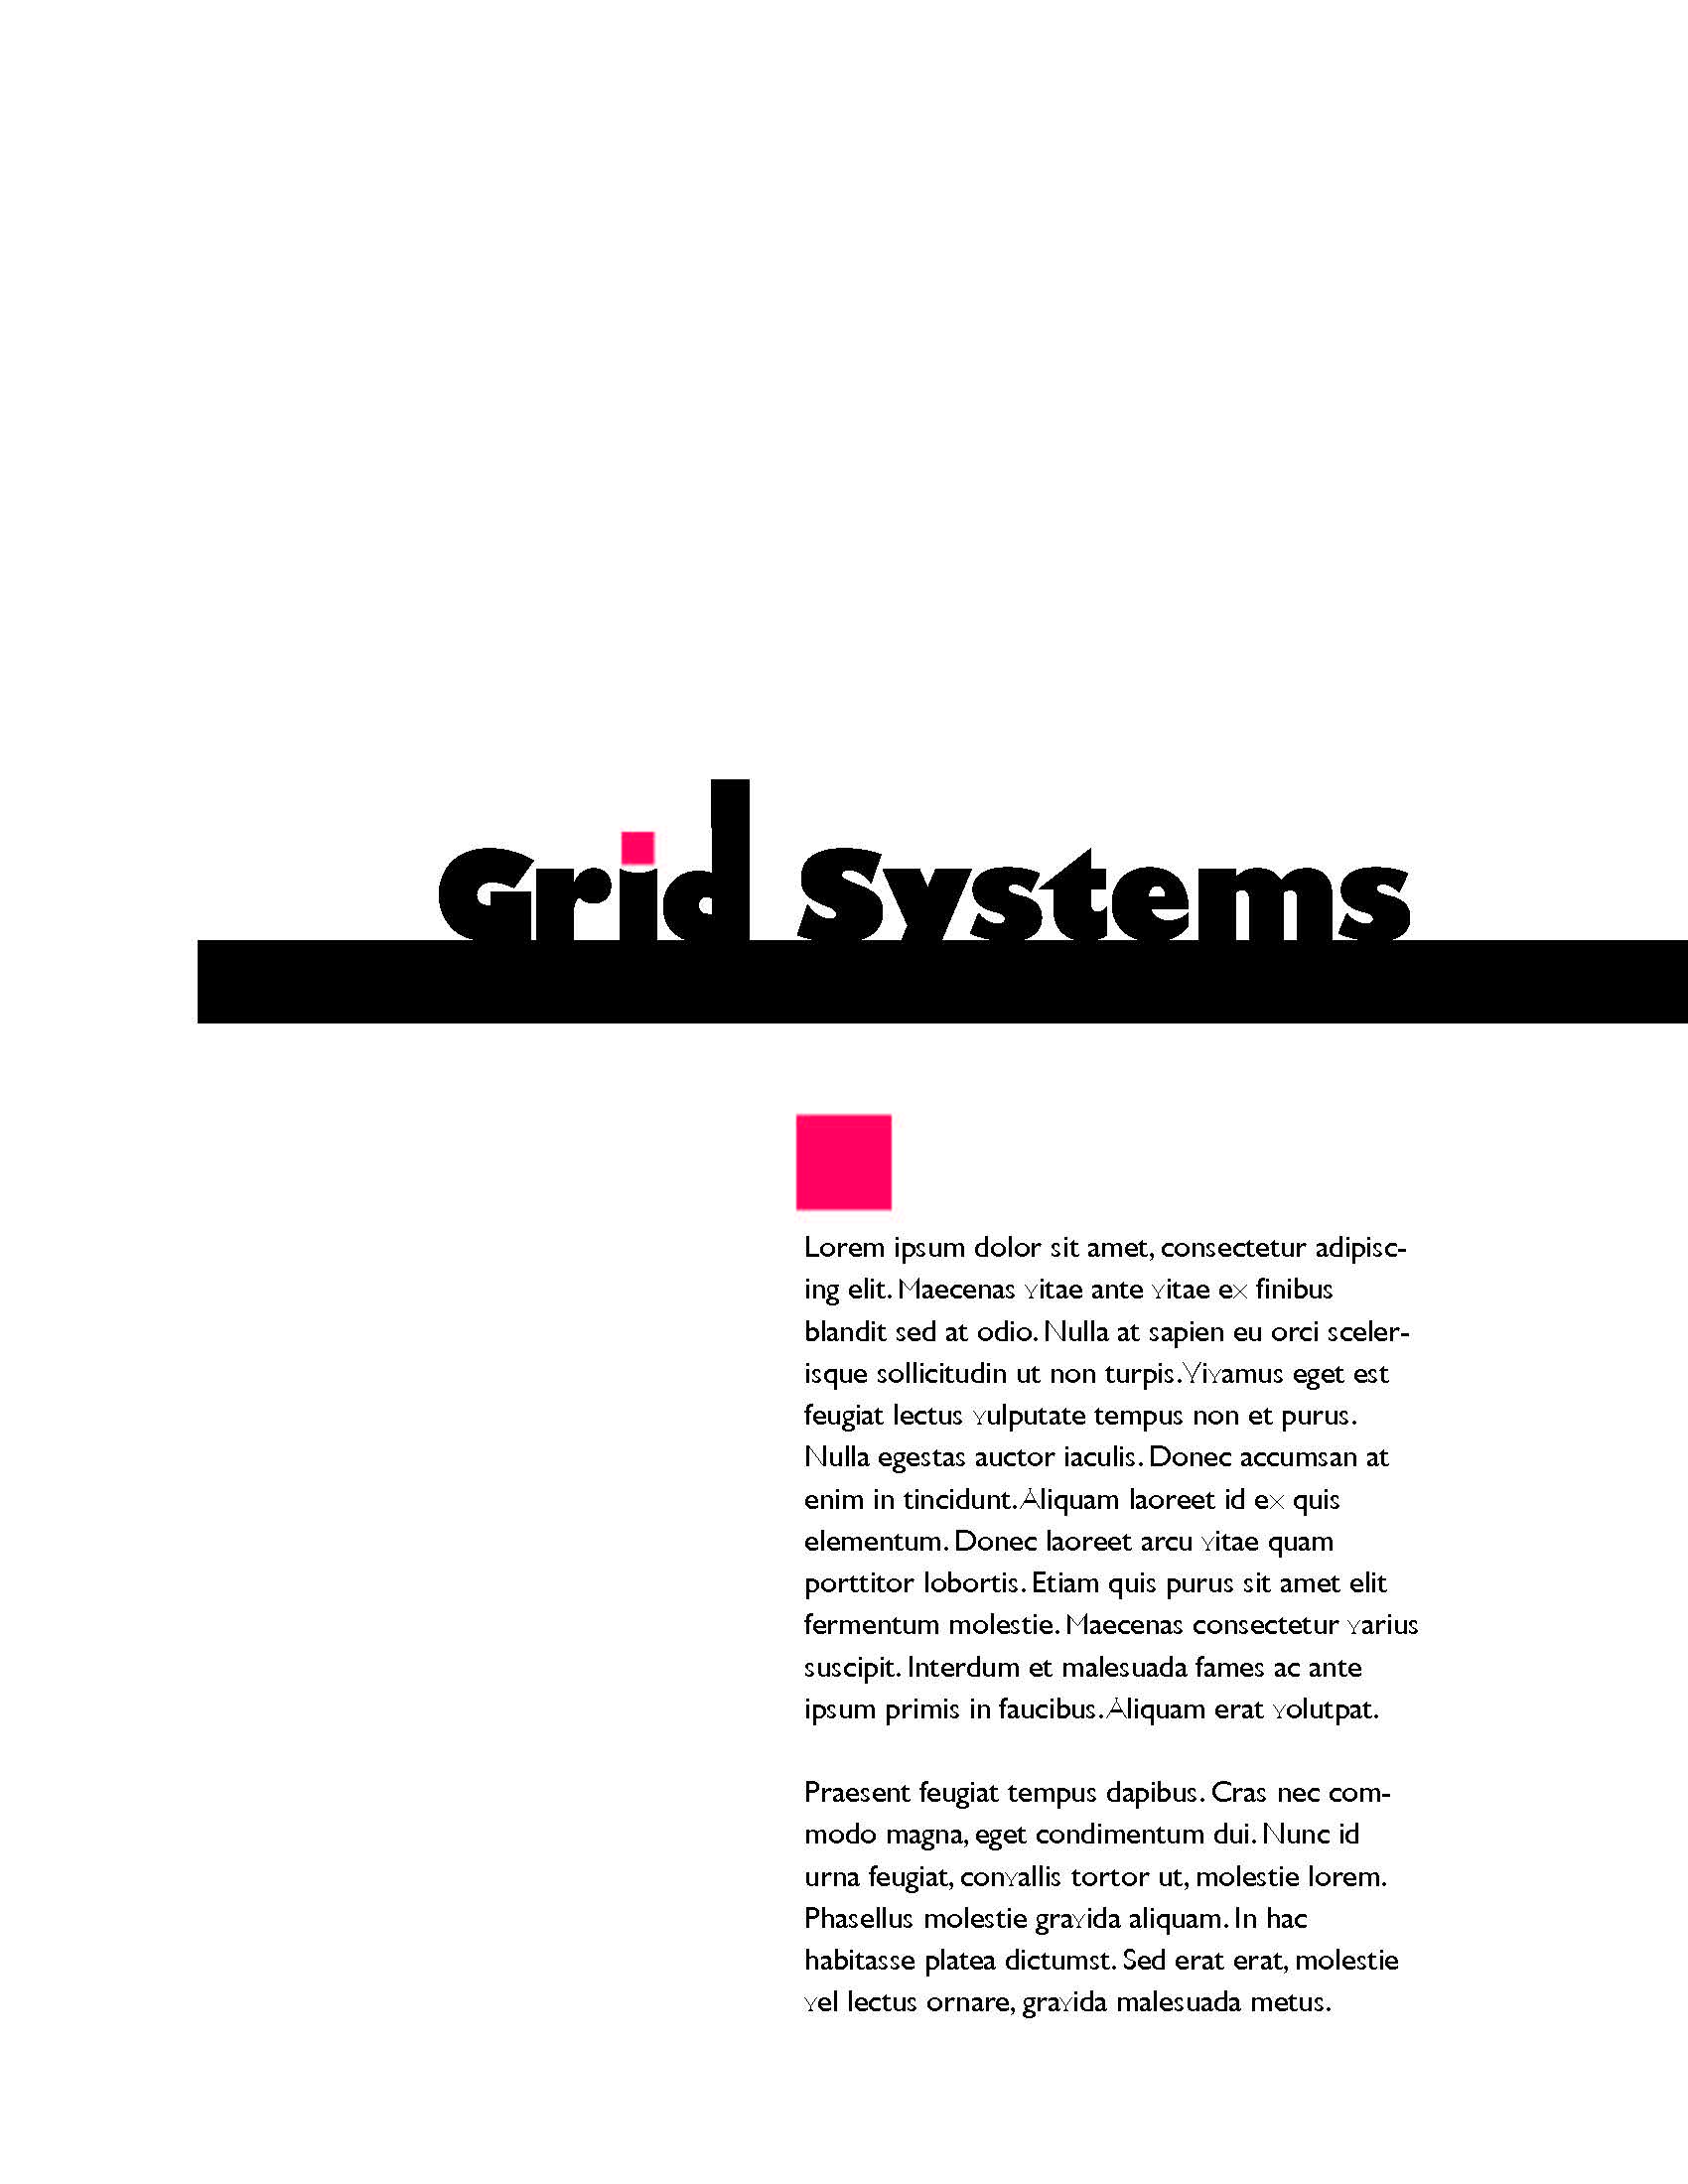 grid_systems